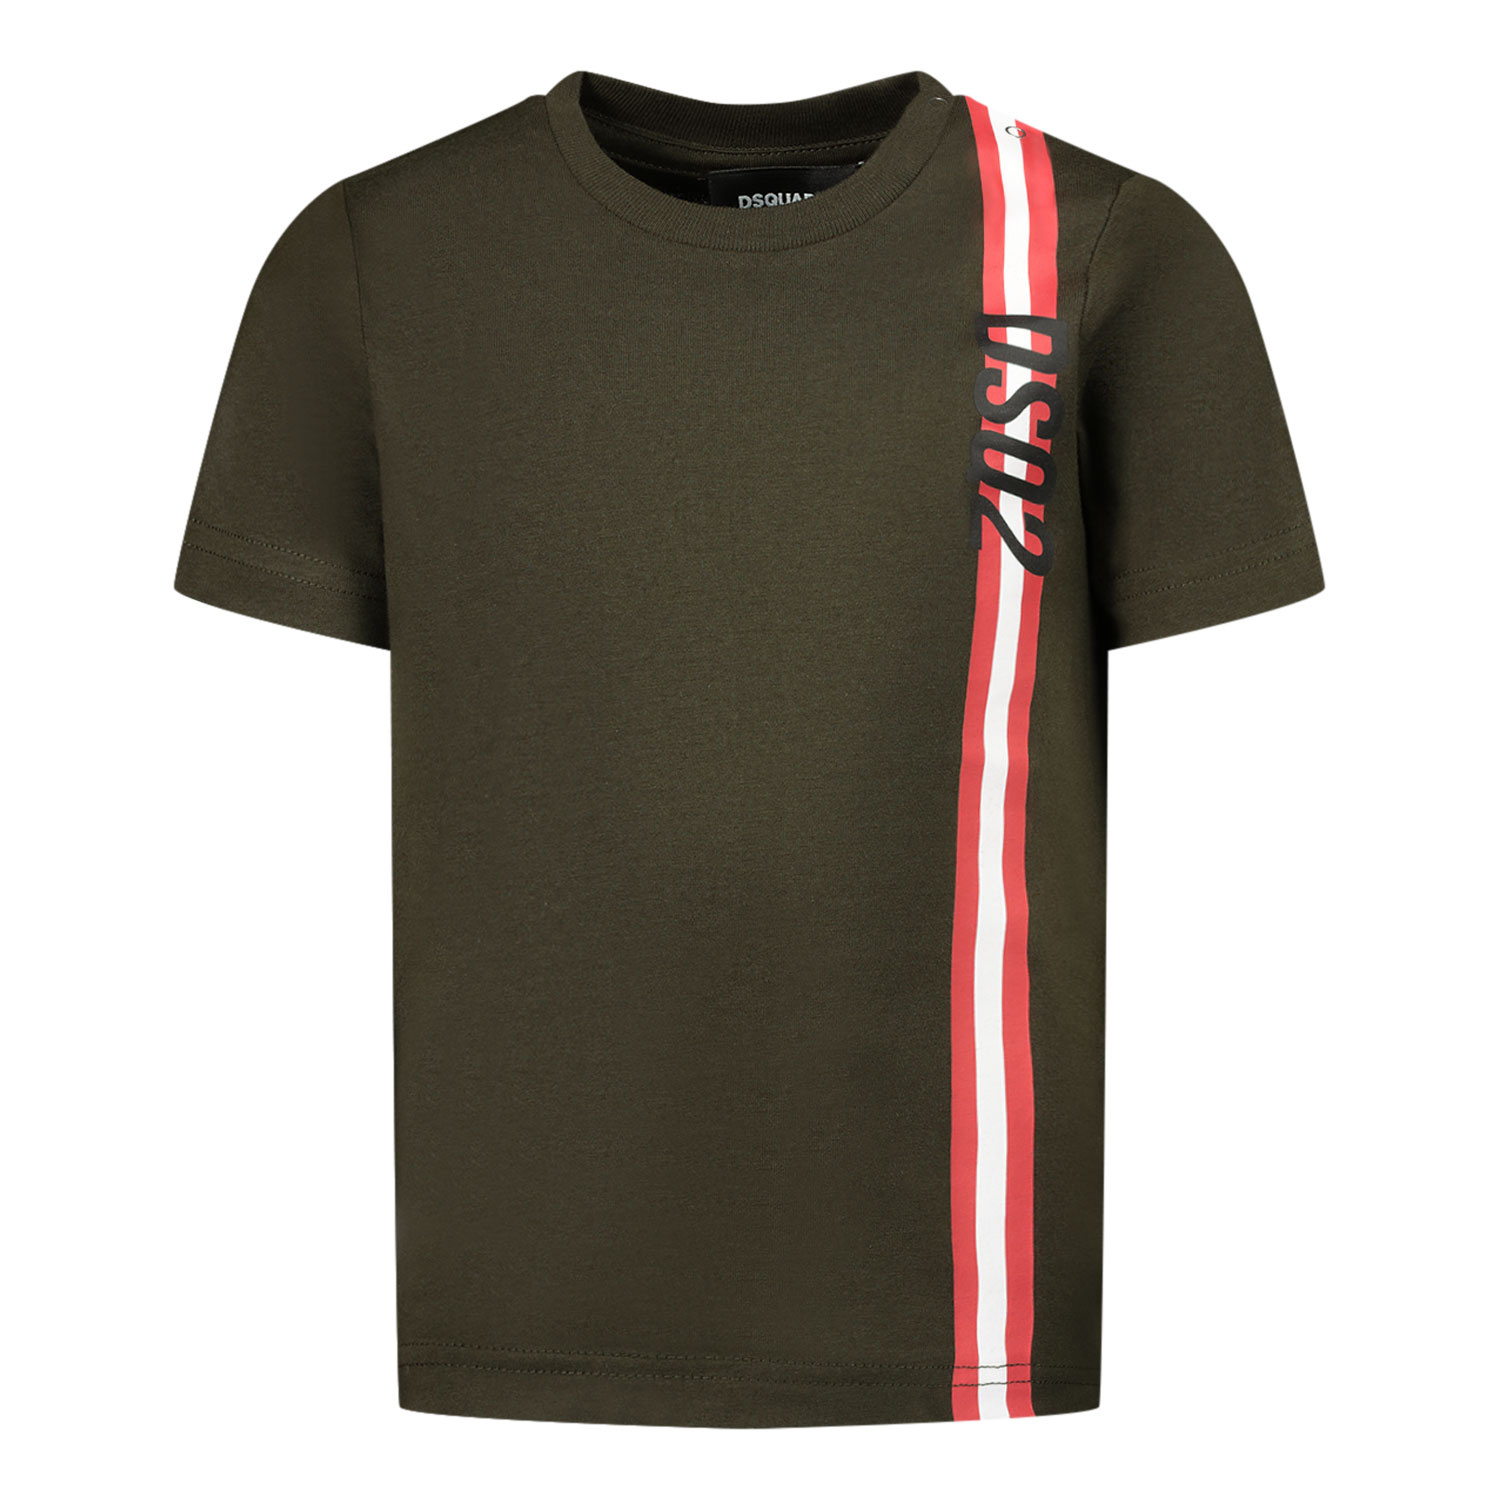 Afbeelding van Dsquared2 DQ0174 baby t-shirt army